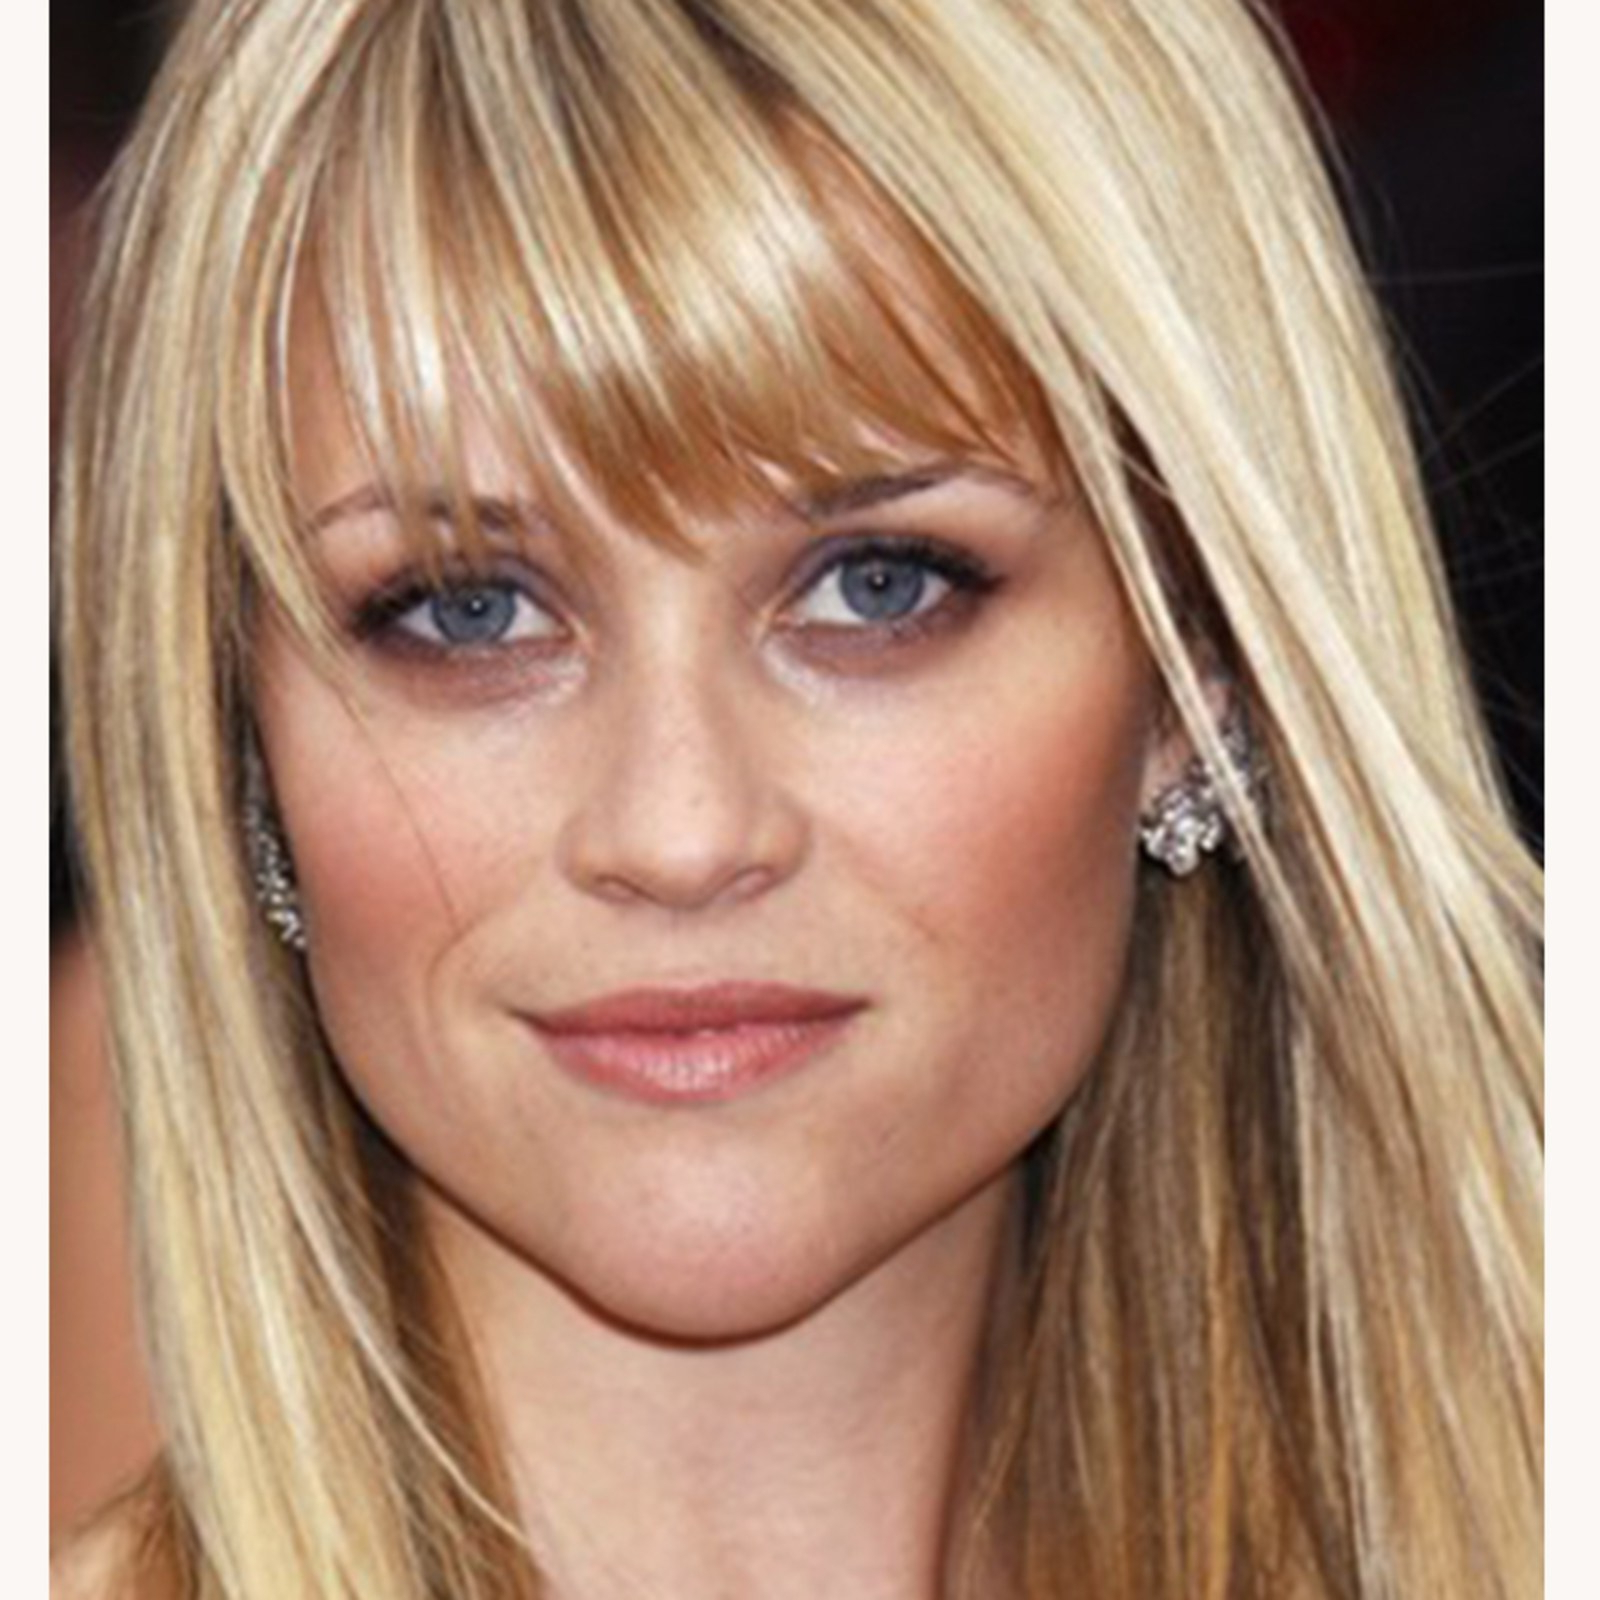 The Top 8 Haircuts For Heart Shaped Faces – Allure With Short Hairstyles For Petite Faces (View 22 of 25)